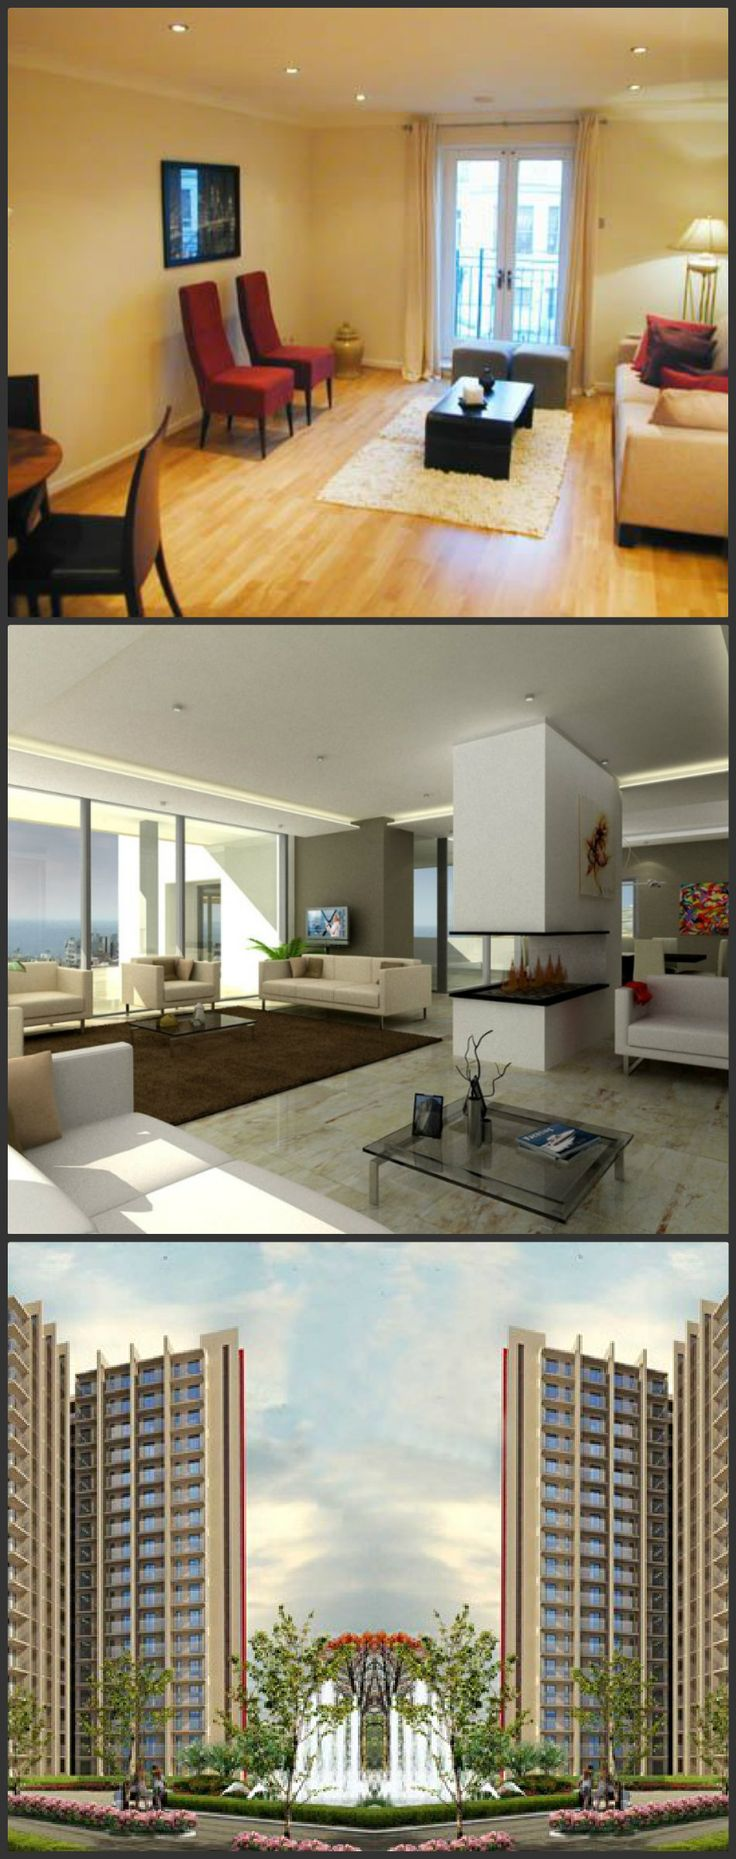 22 best flats or appartments images on pinterest architecture live and architecture design